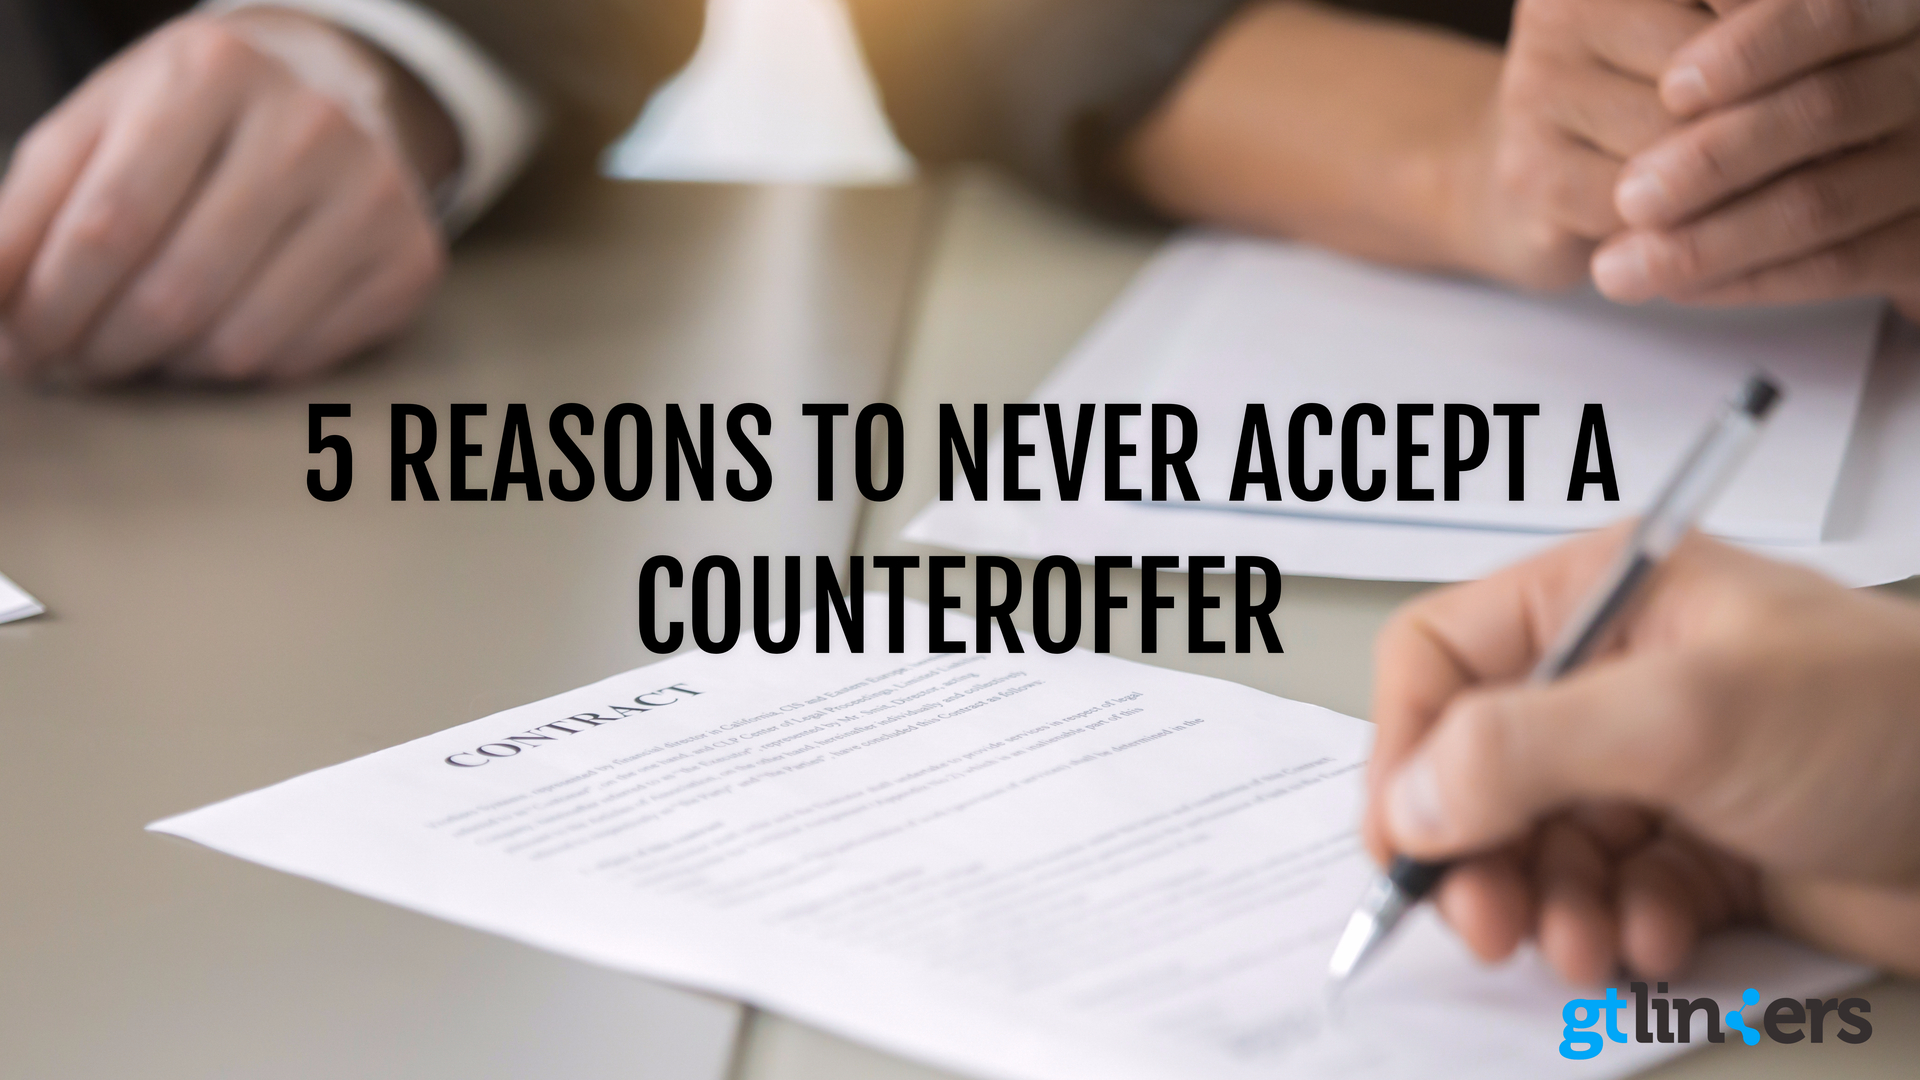 Reasons for Never Accepting a Counteroffer